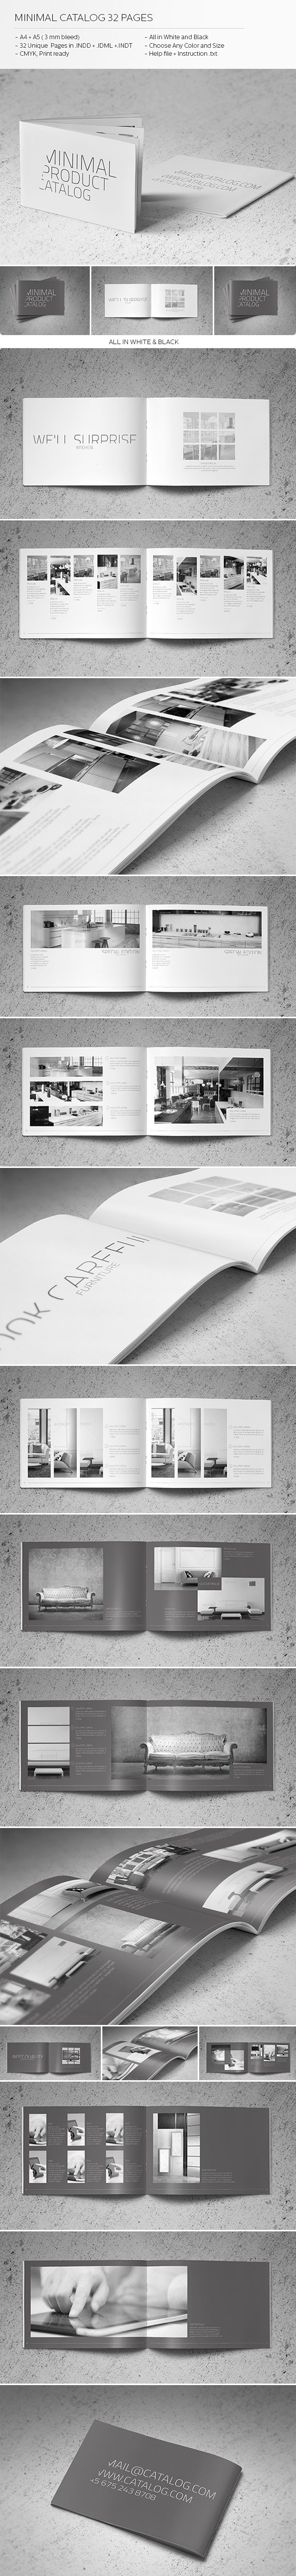 Minimal Catalog 32 Pages by Realstar, via Behance